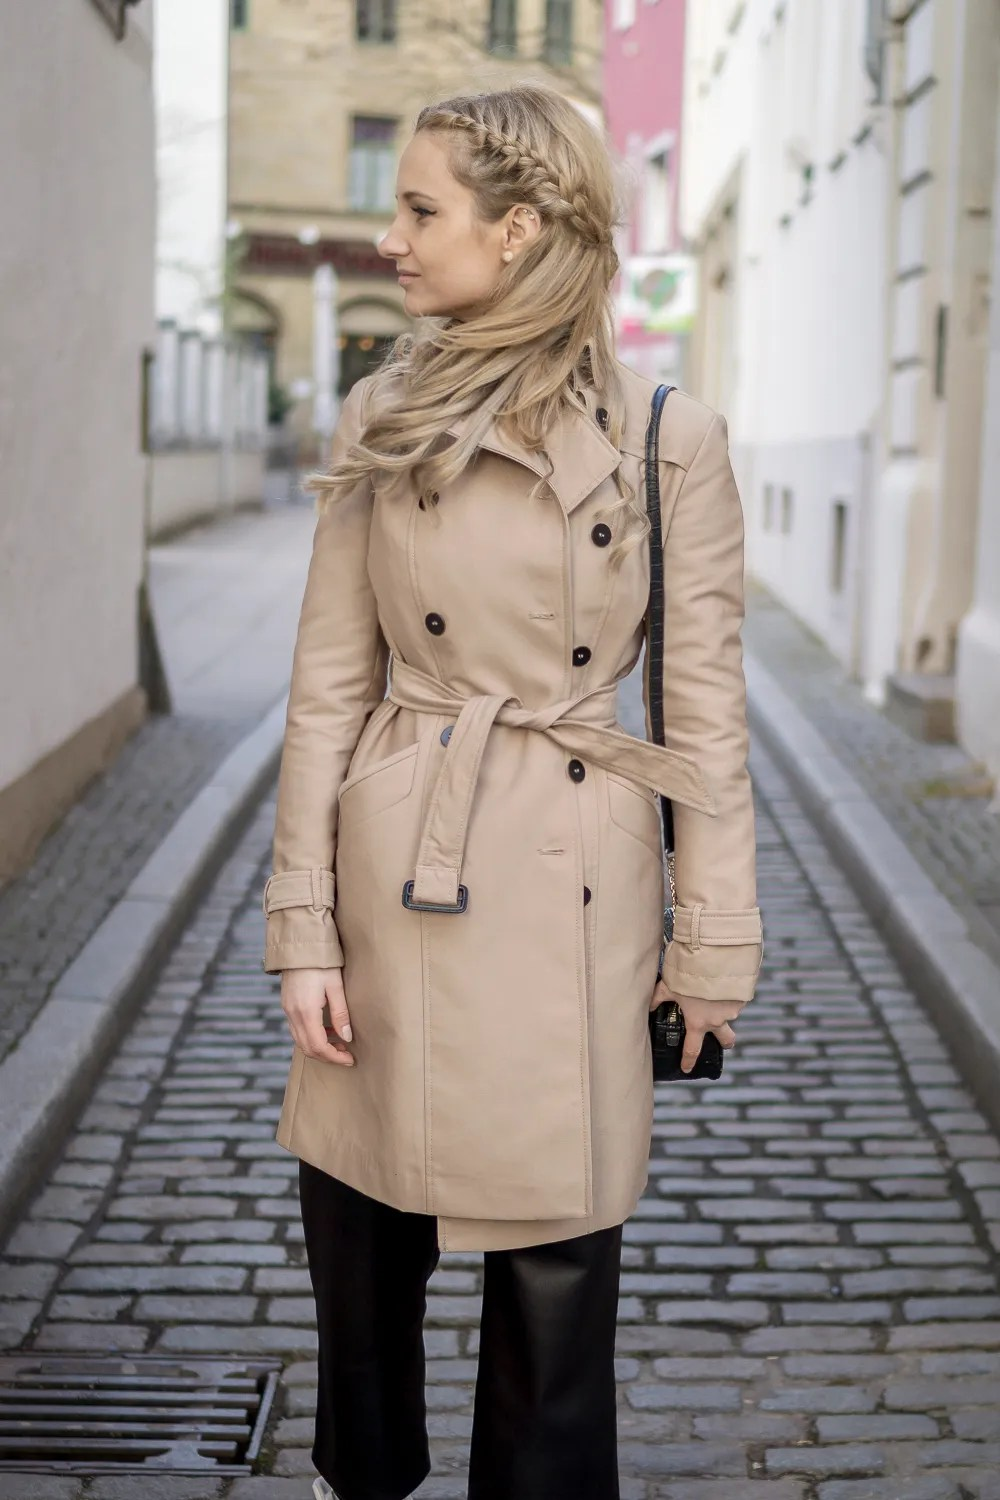 beige trench coat zara outfit look ootd lookbook